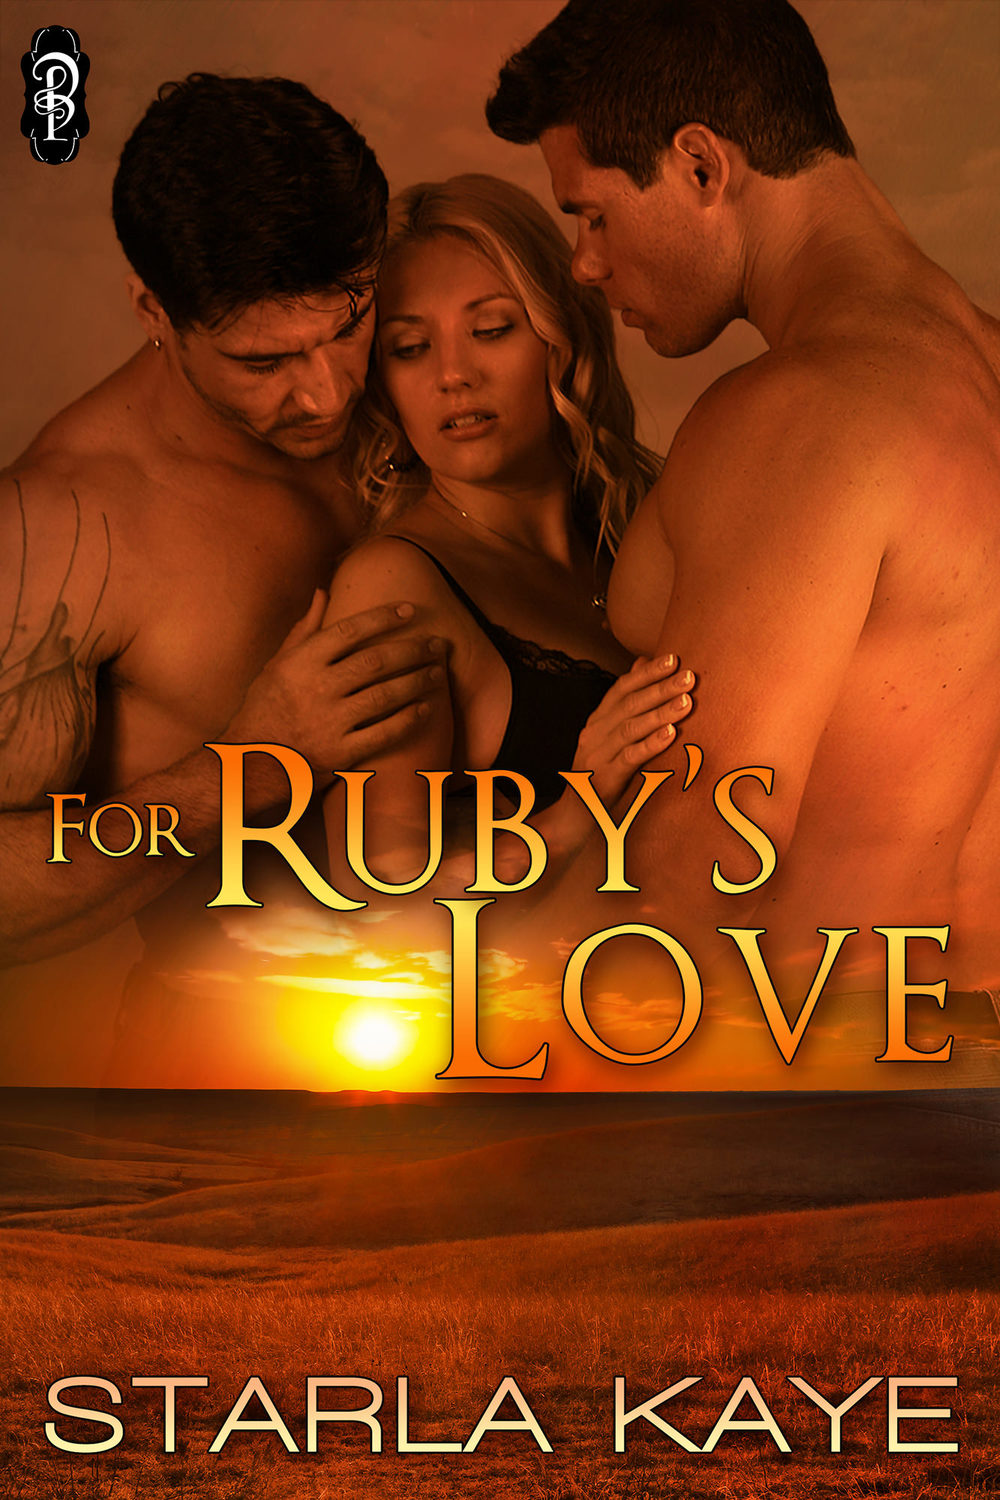 For Ruby's Love-1333x2000.jpg